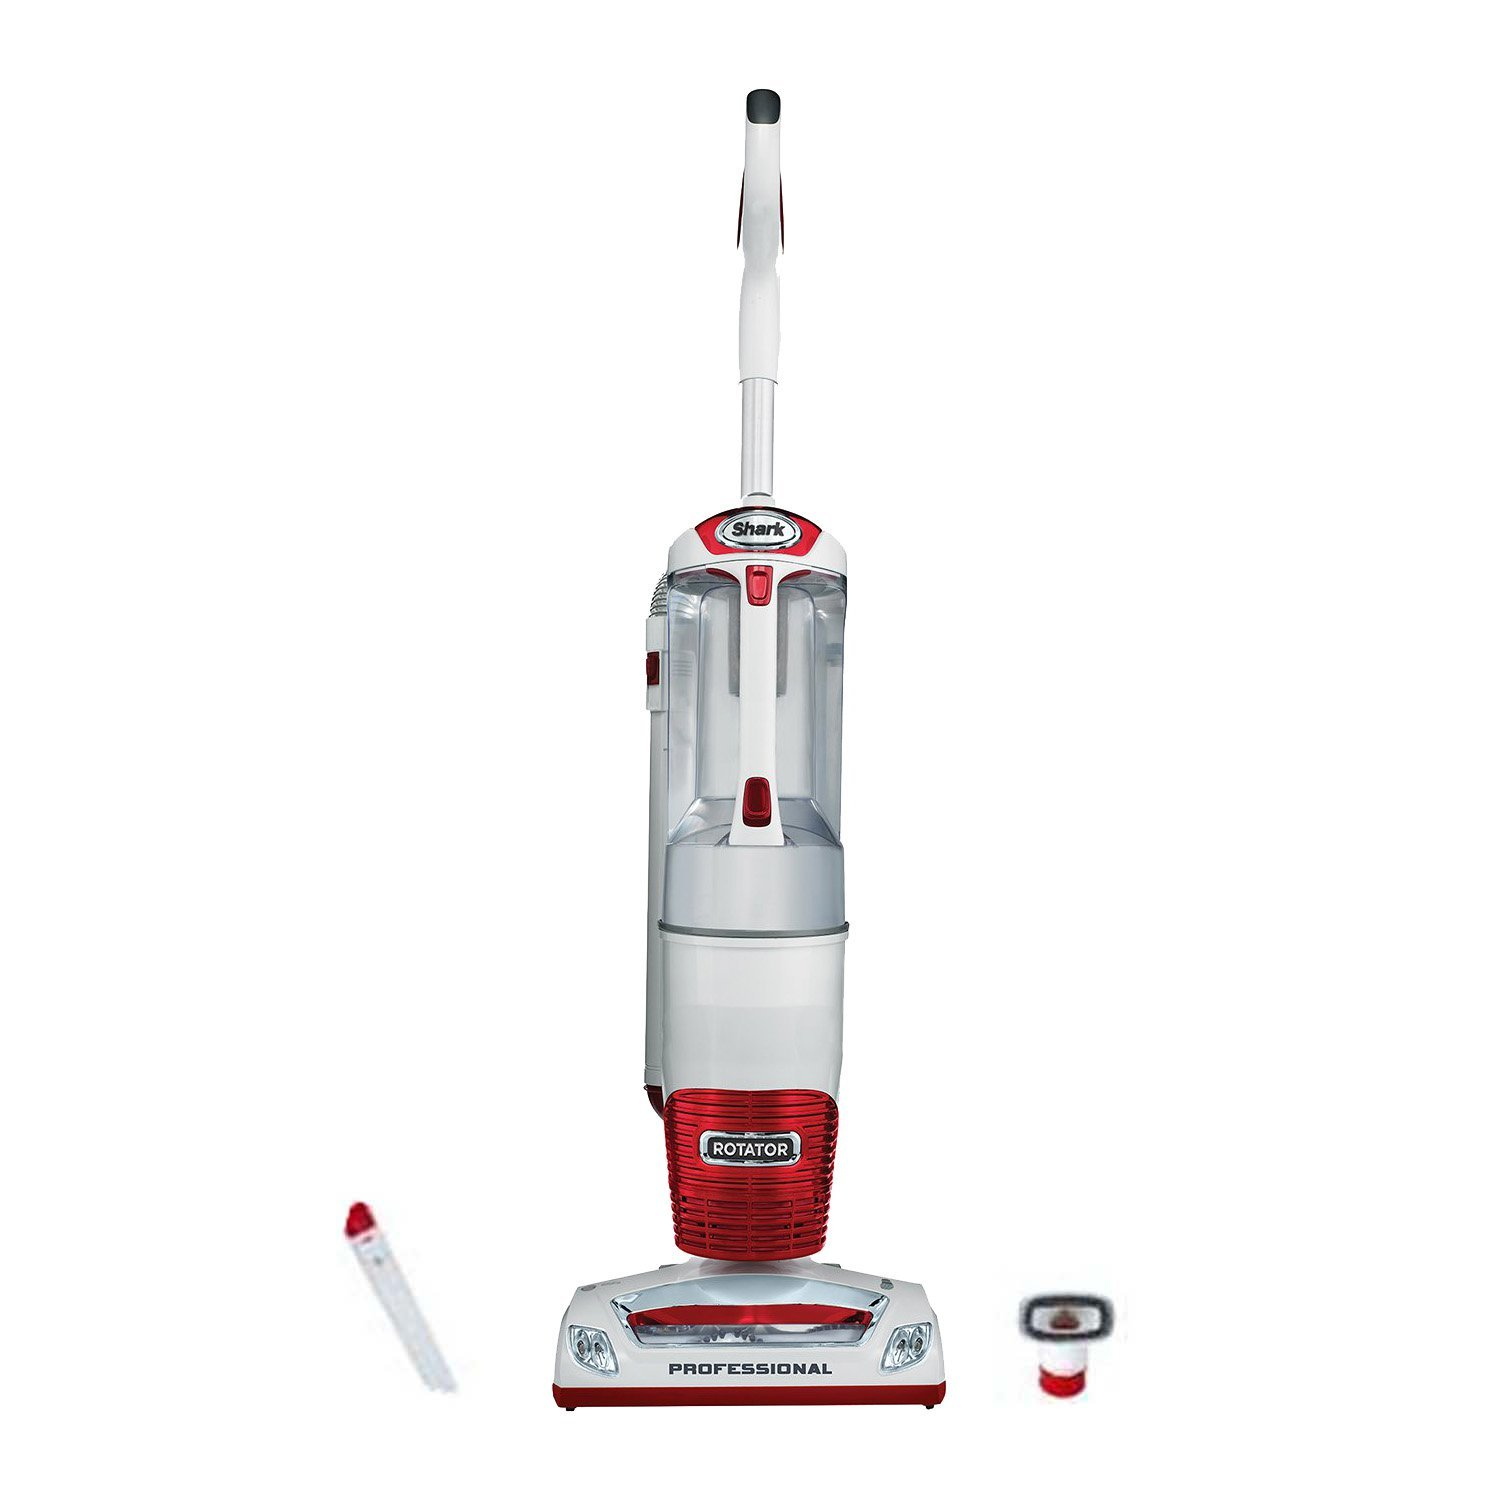 Shark Rotator Professional Vacuum w/ Accessories NV400REF (Renewed)